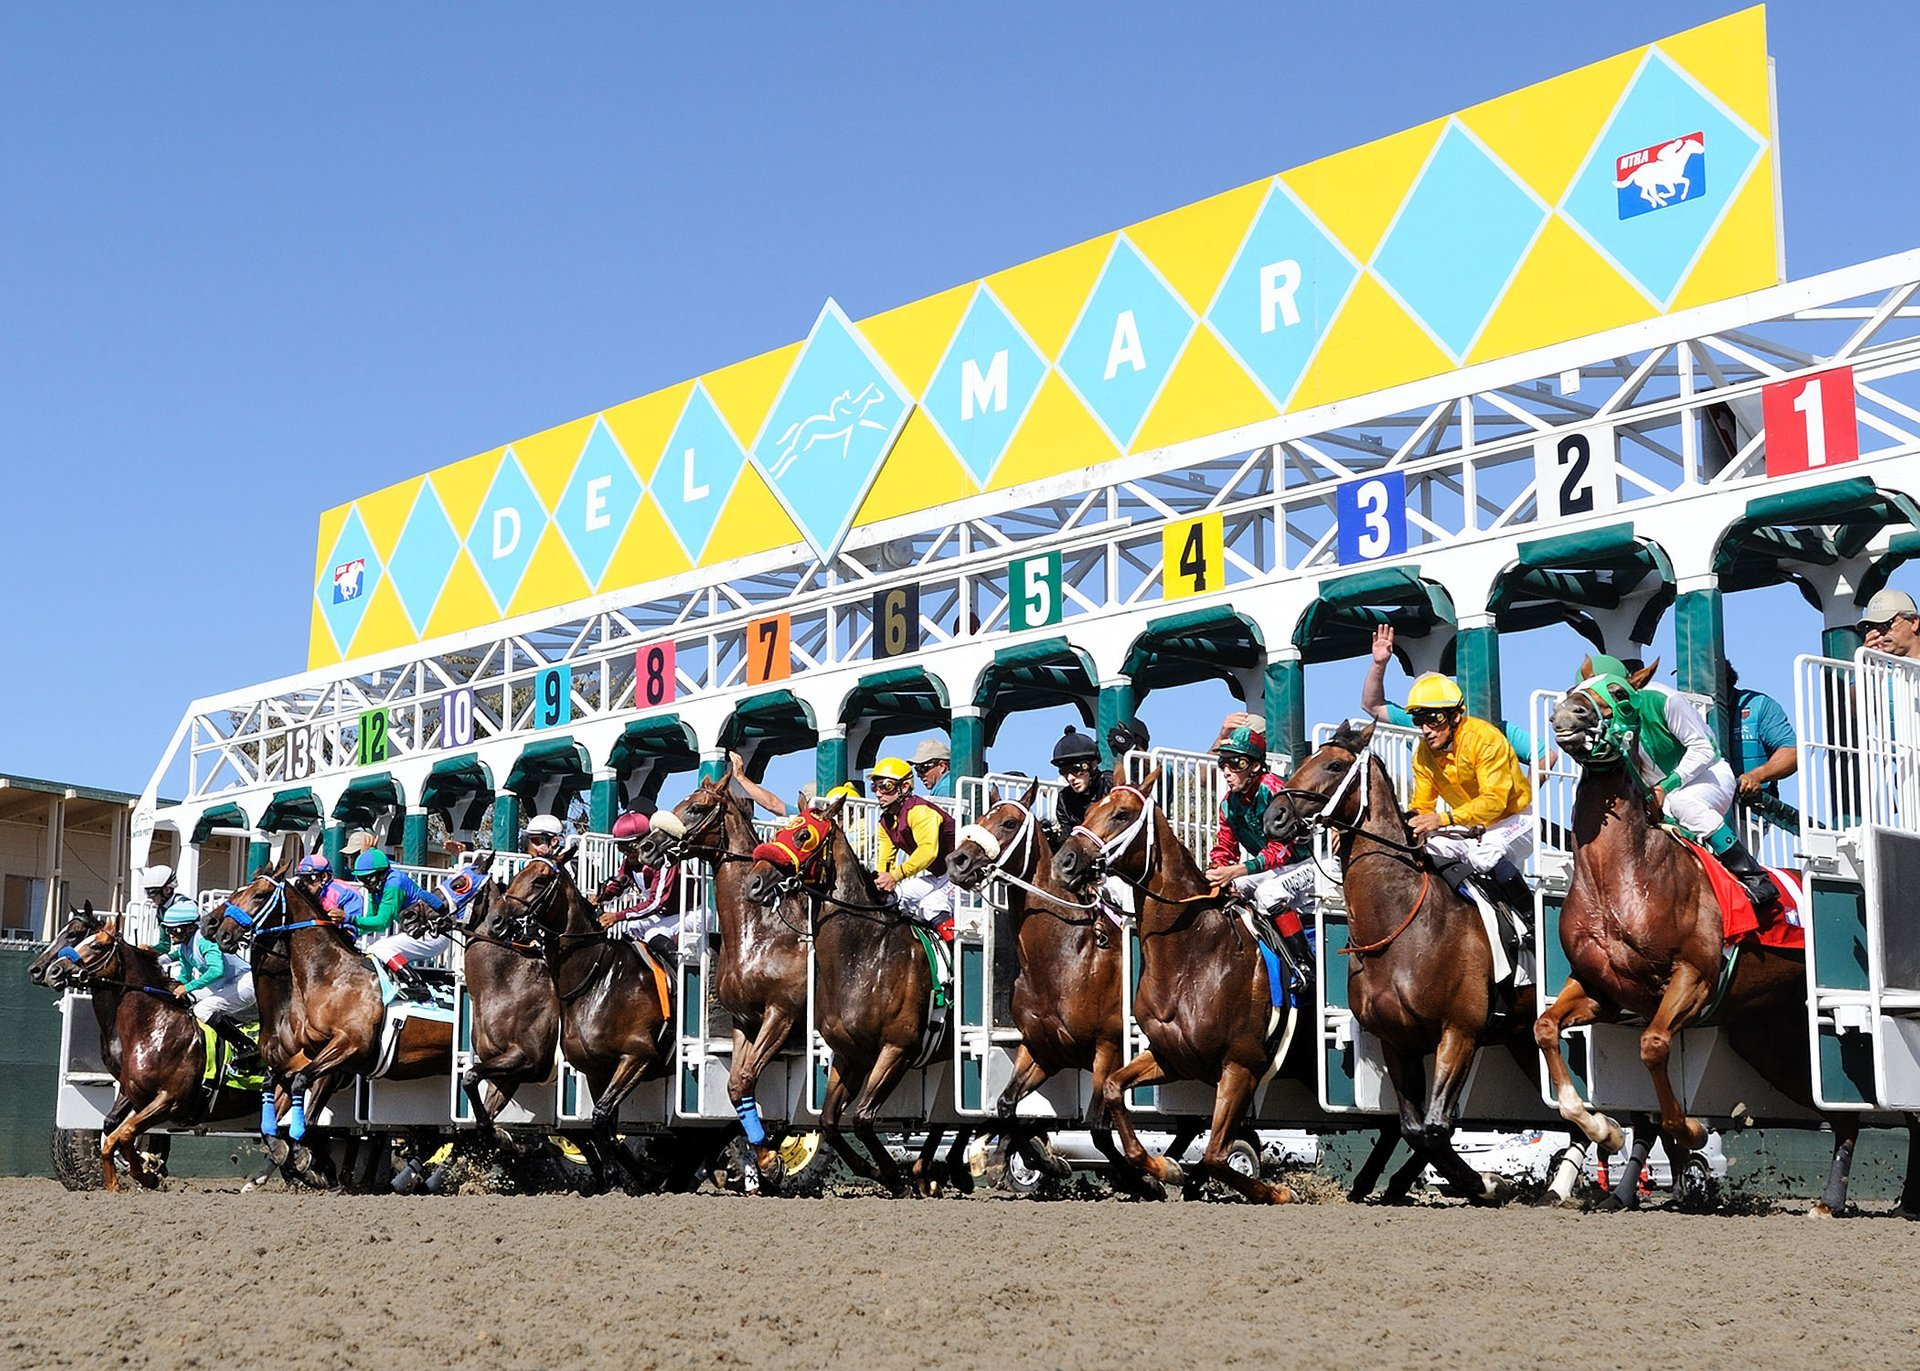 Del Mar Racing Season in San Diego - Best Season 2020